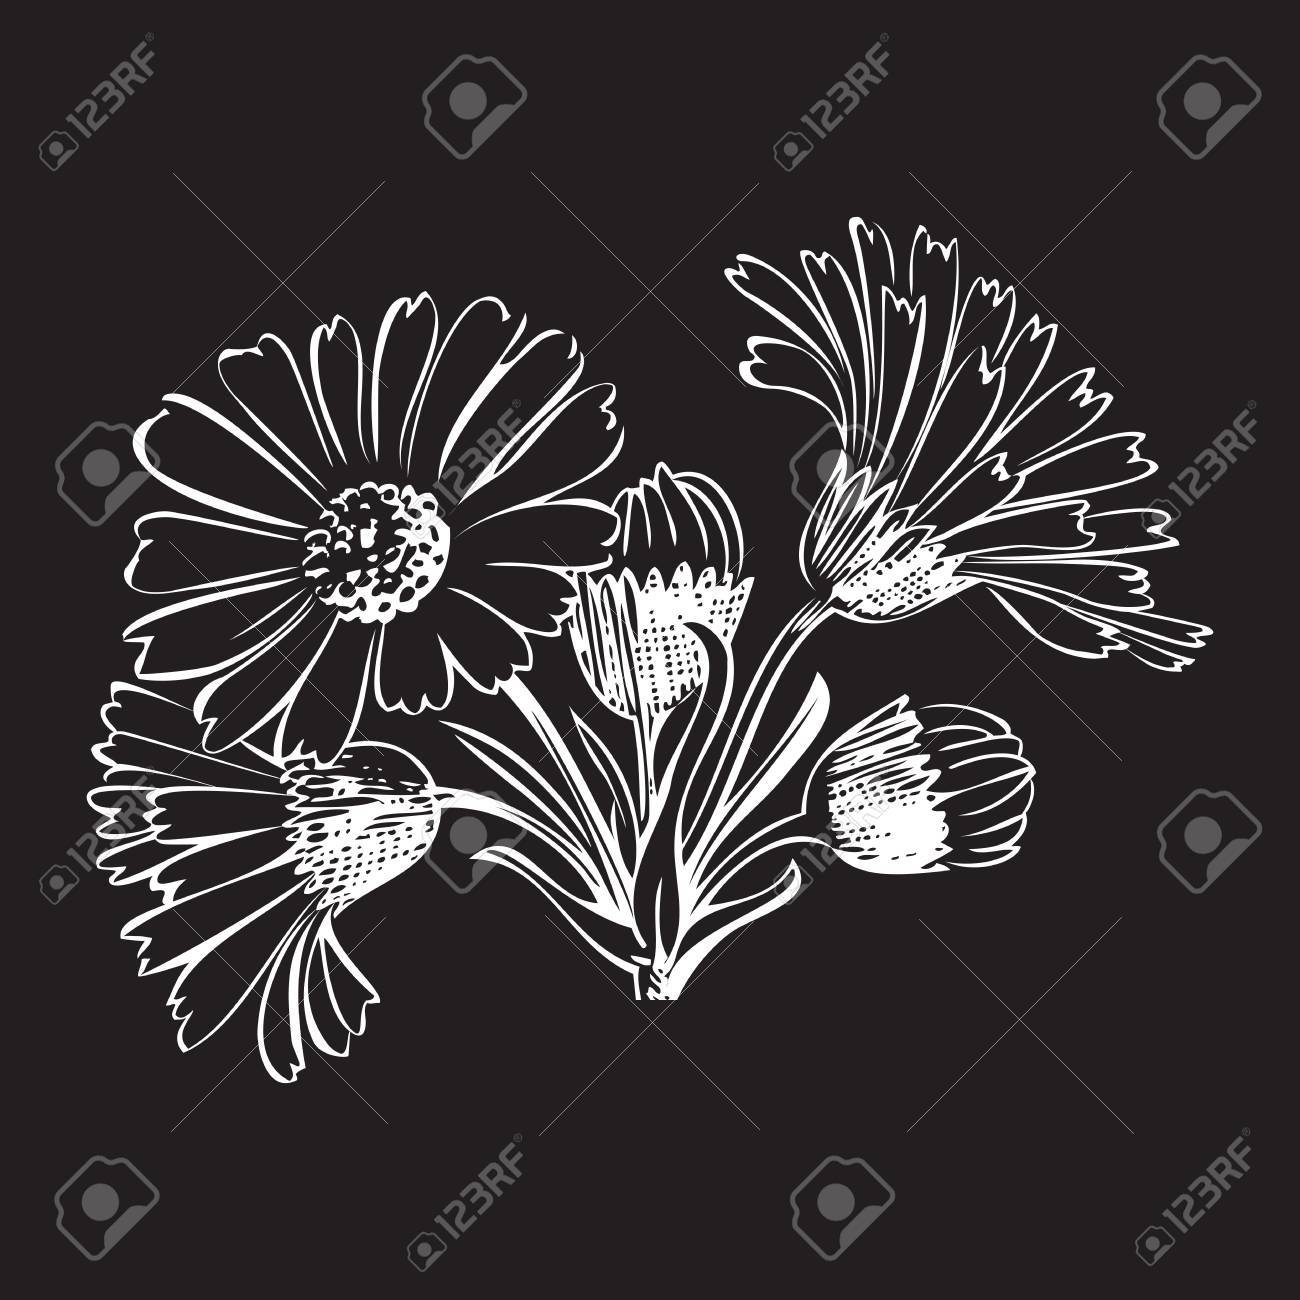 Hand Drawn Bouquet Of Daisy Flowers Isolated On Black Background